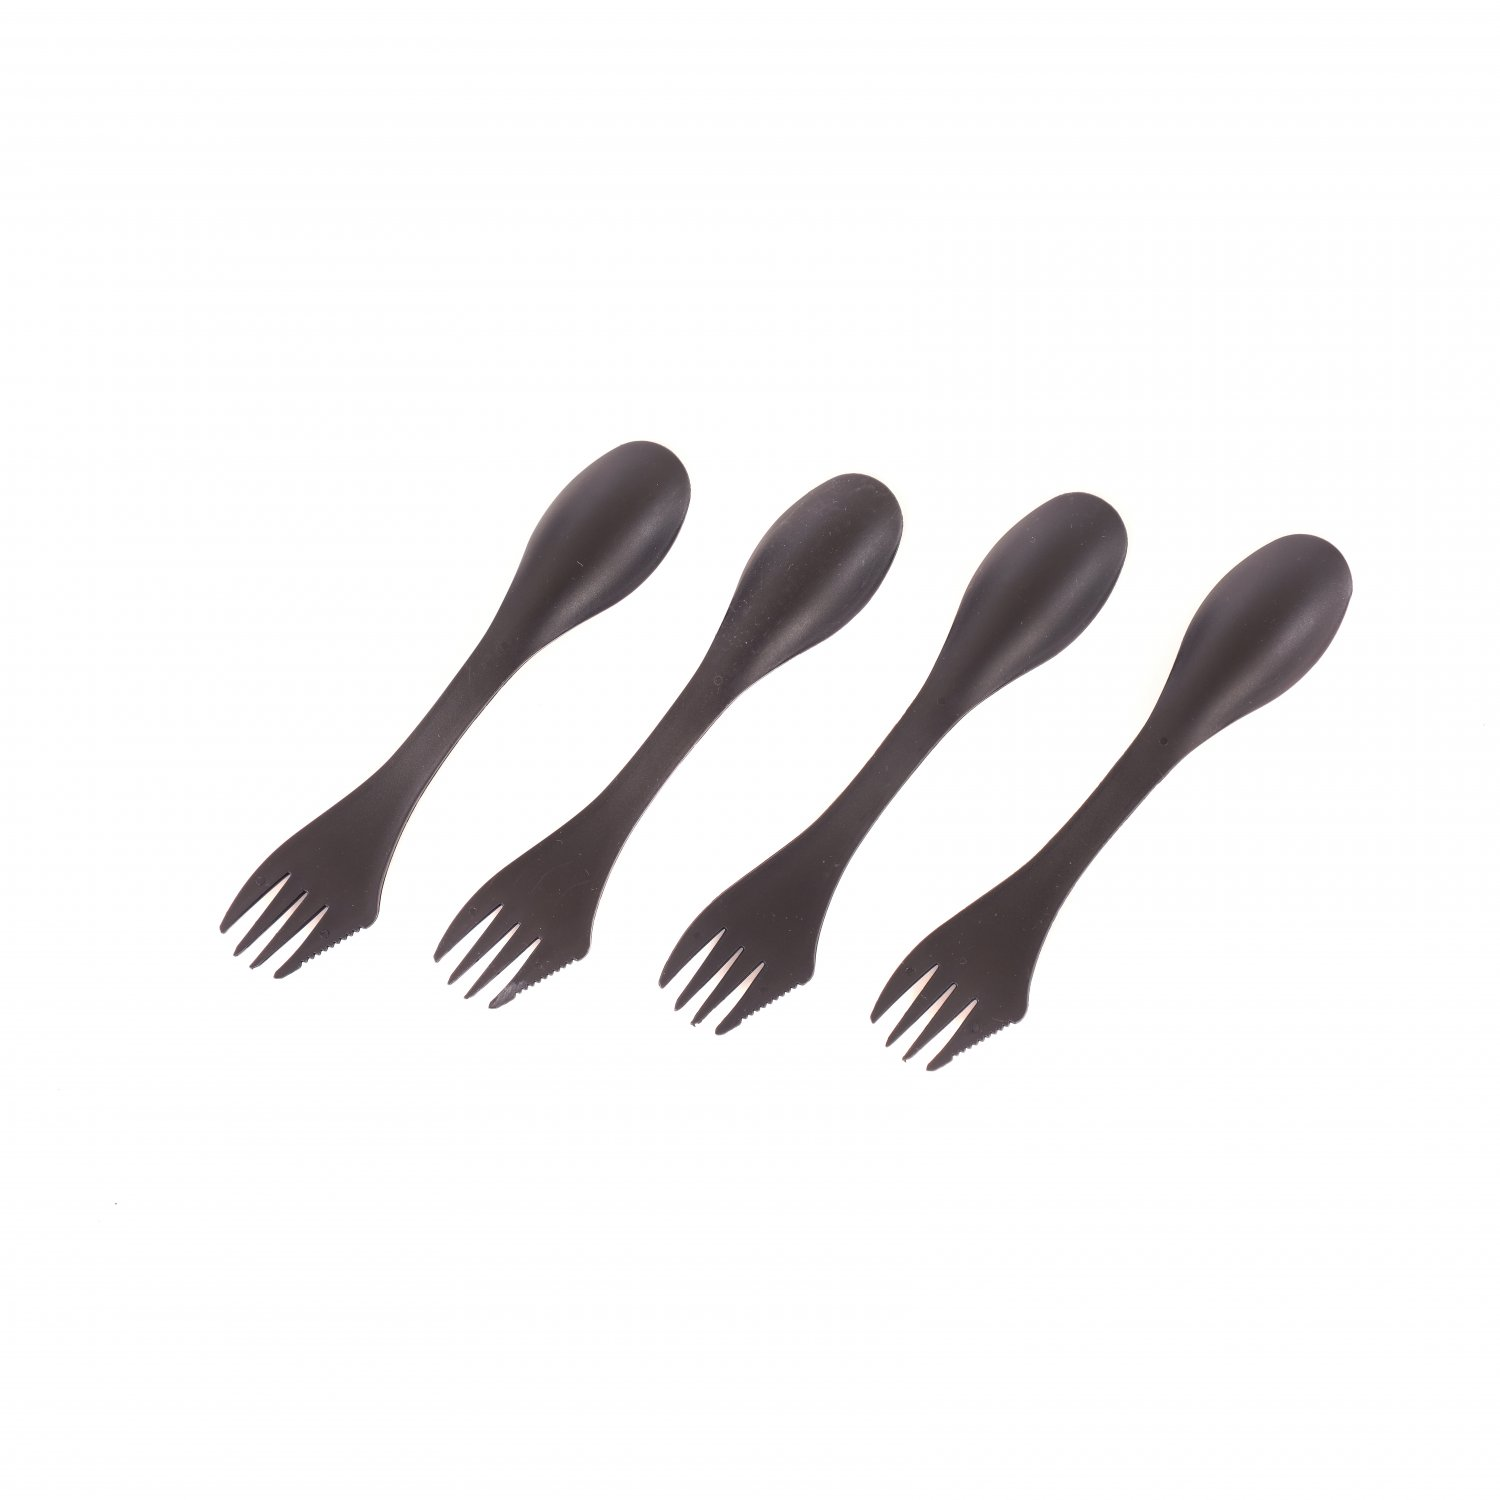 Set of 4 Black Sporks Camping Cutlery Set Reusable